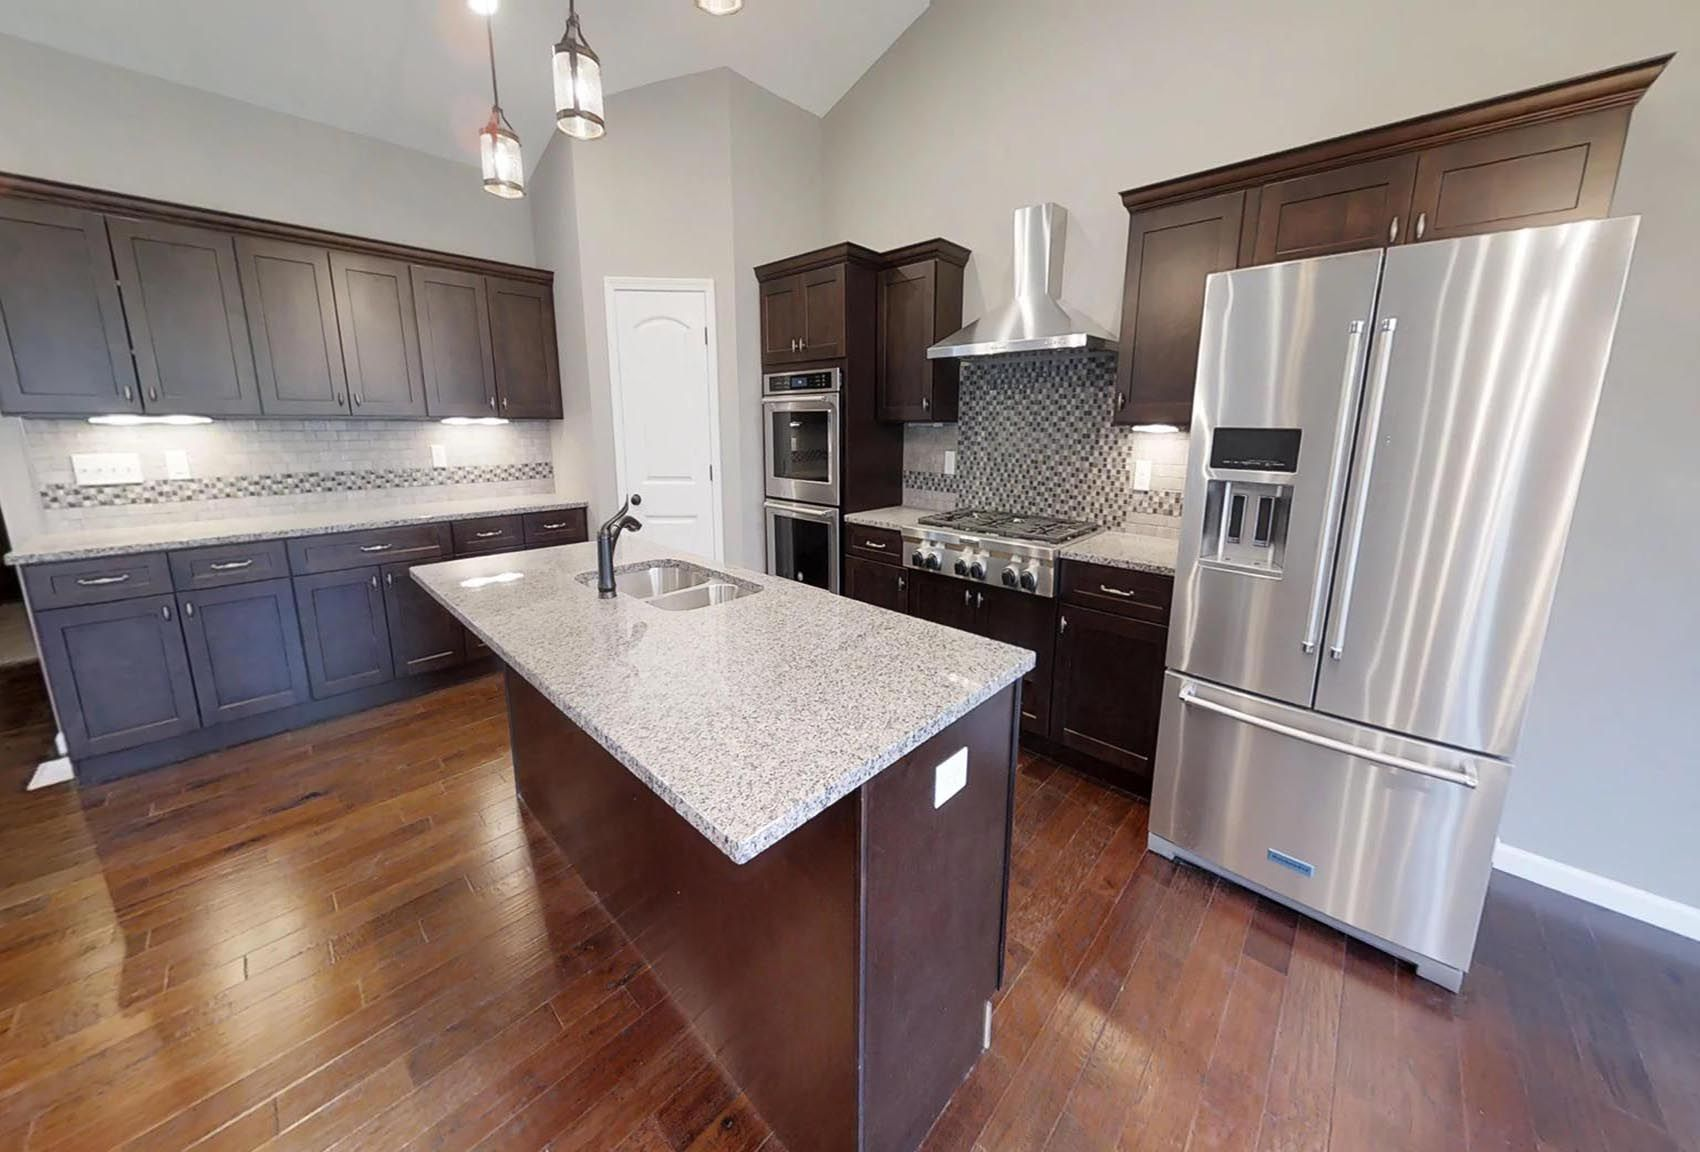 Kitchen featured in the Carswell By C.A. Jones, Inc.  in St. Louis, IL